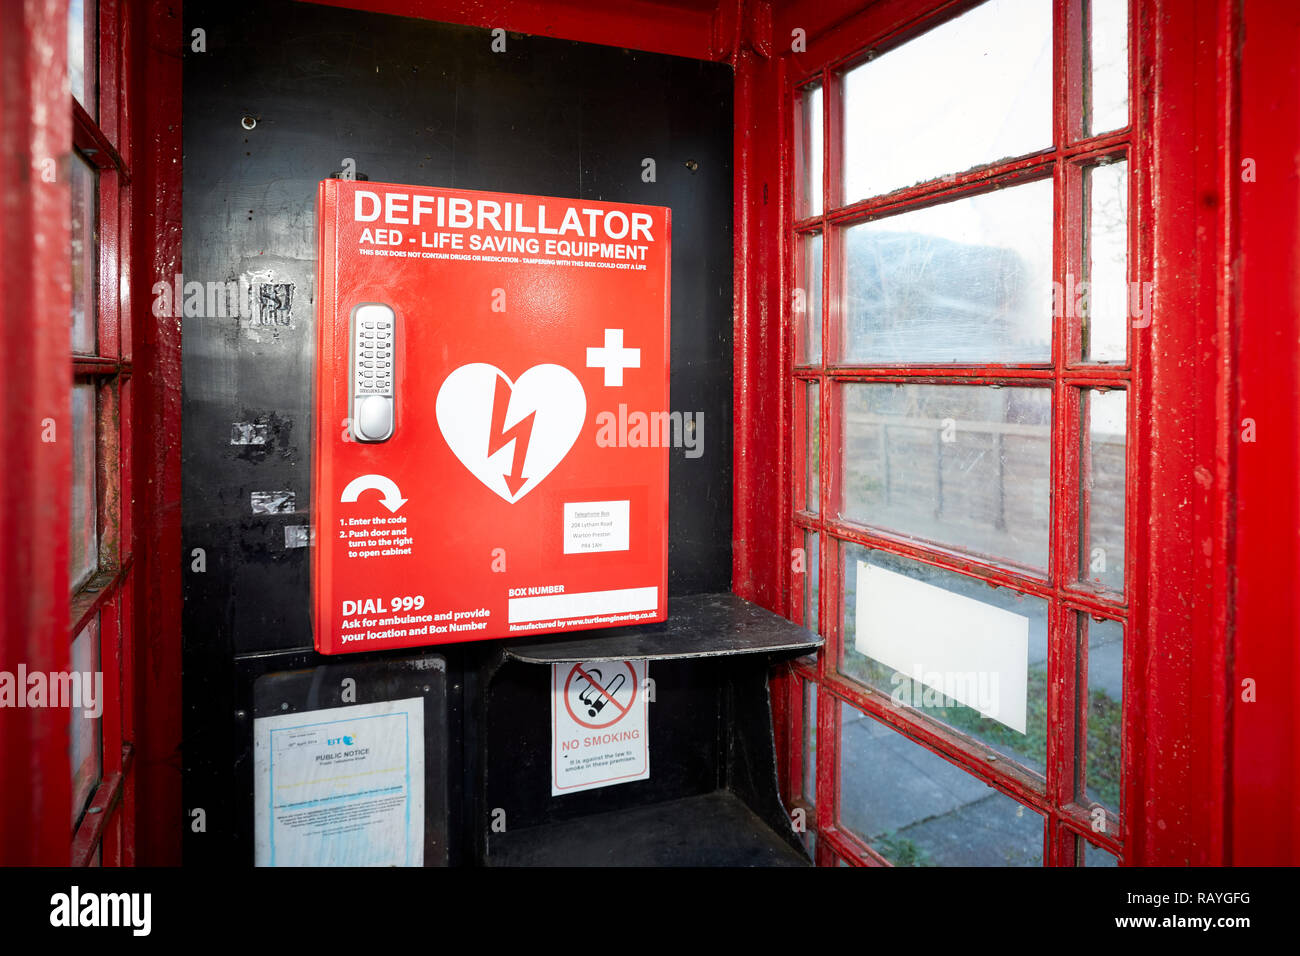 Emergency defibrillation automated external defibrillator (AED) located in an old red telephone box in a Lancashire Village - Stock Image